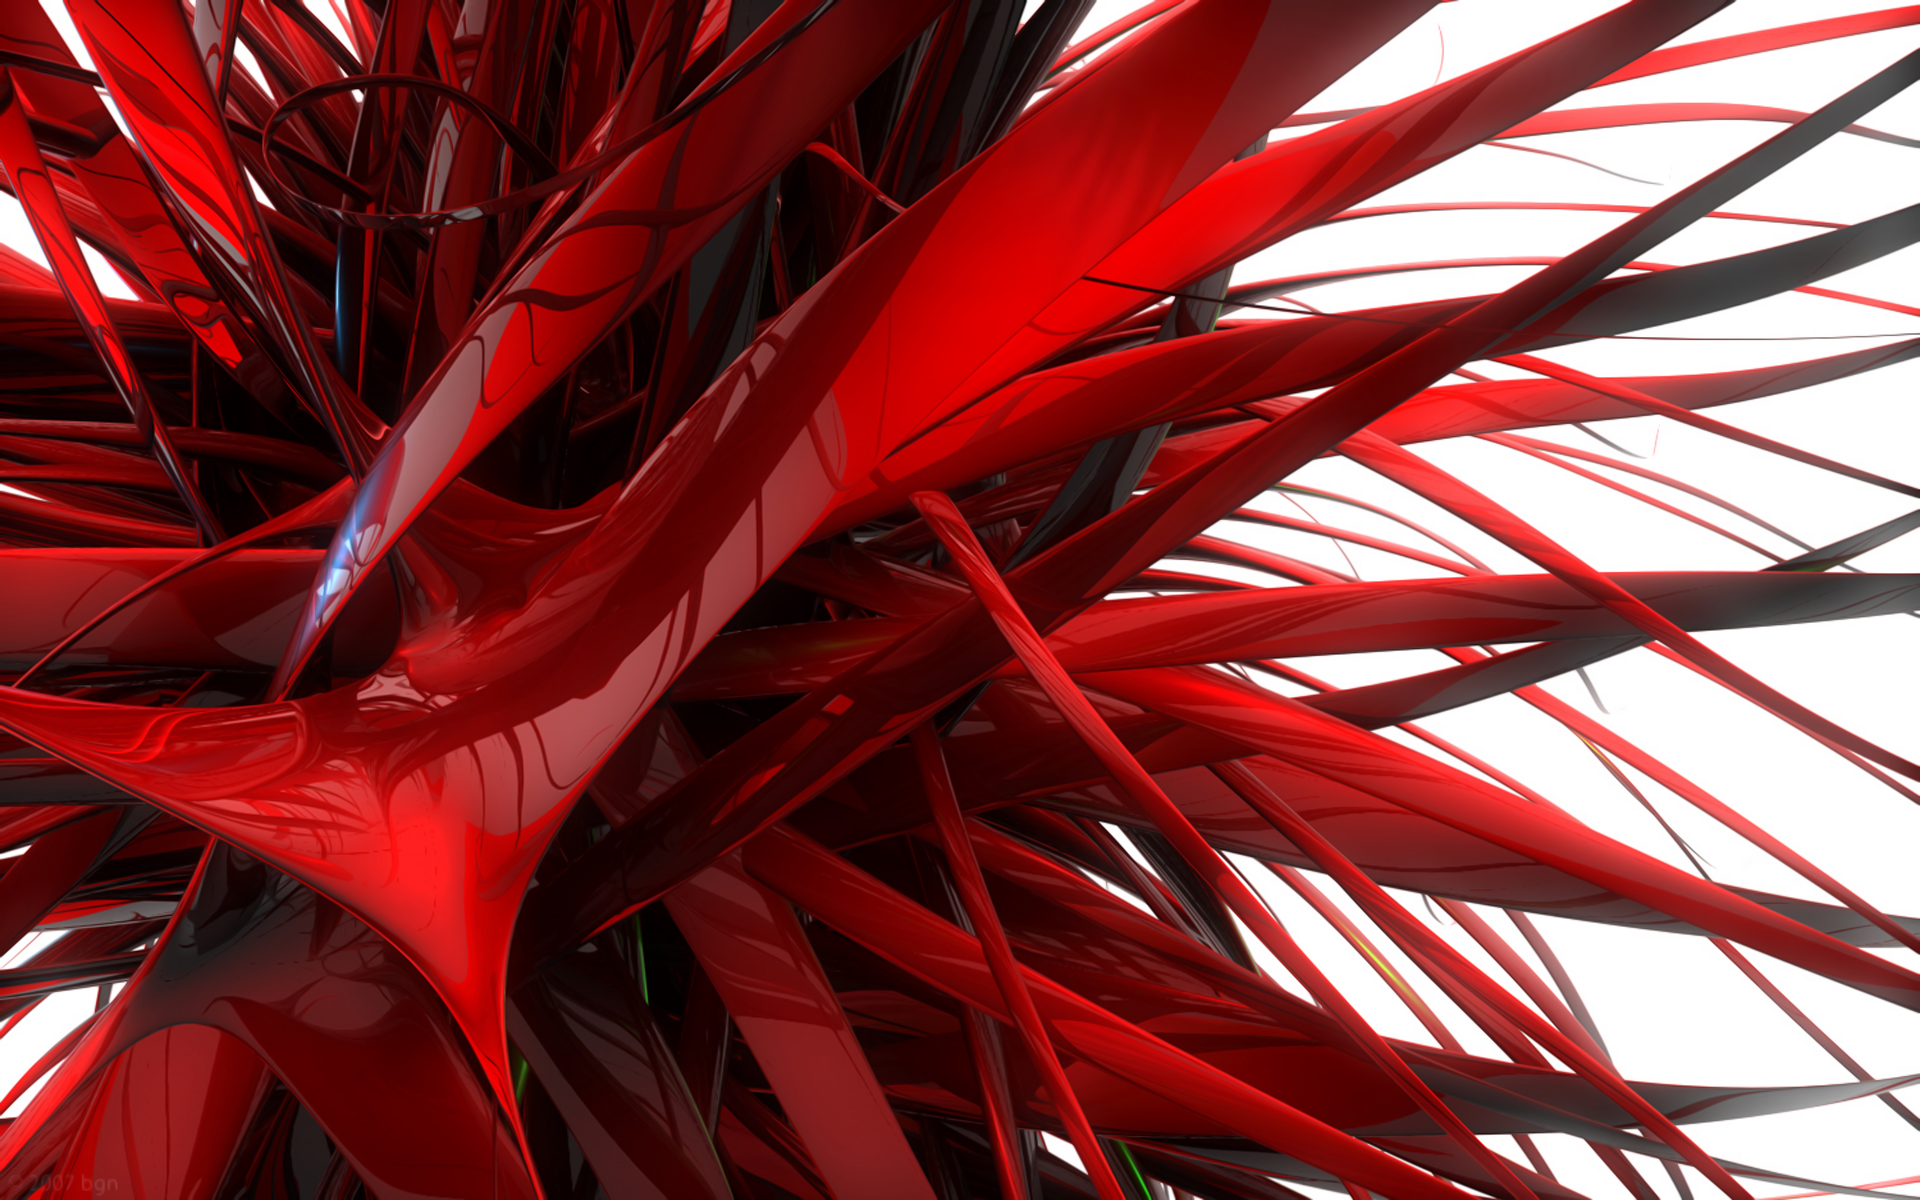 Red Abstract Ii Lenycom 1218164 Wallpaper wallpaper